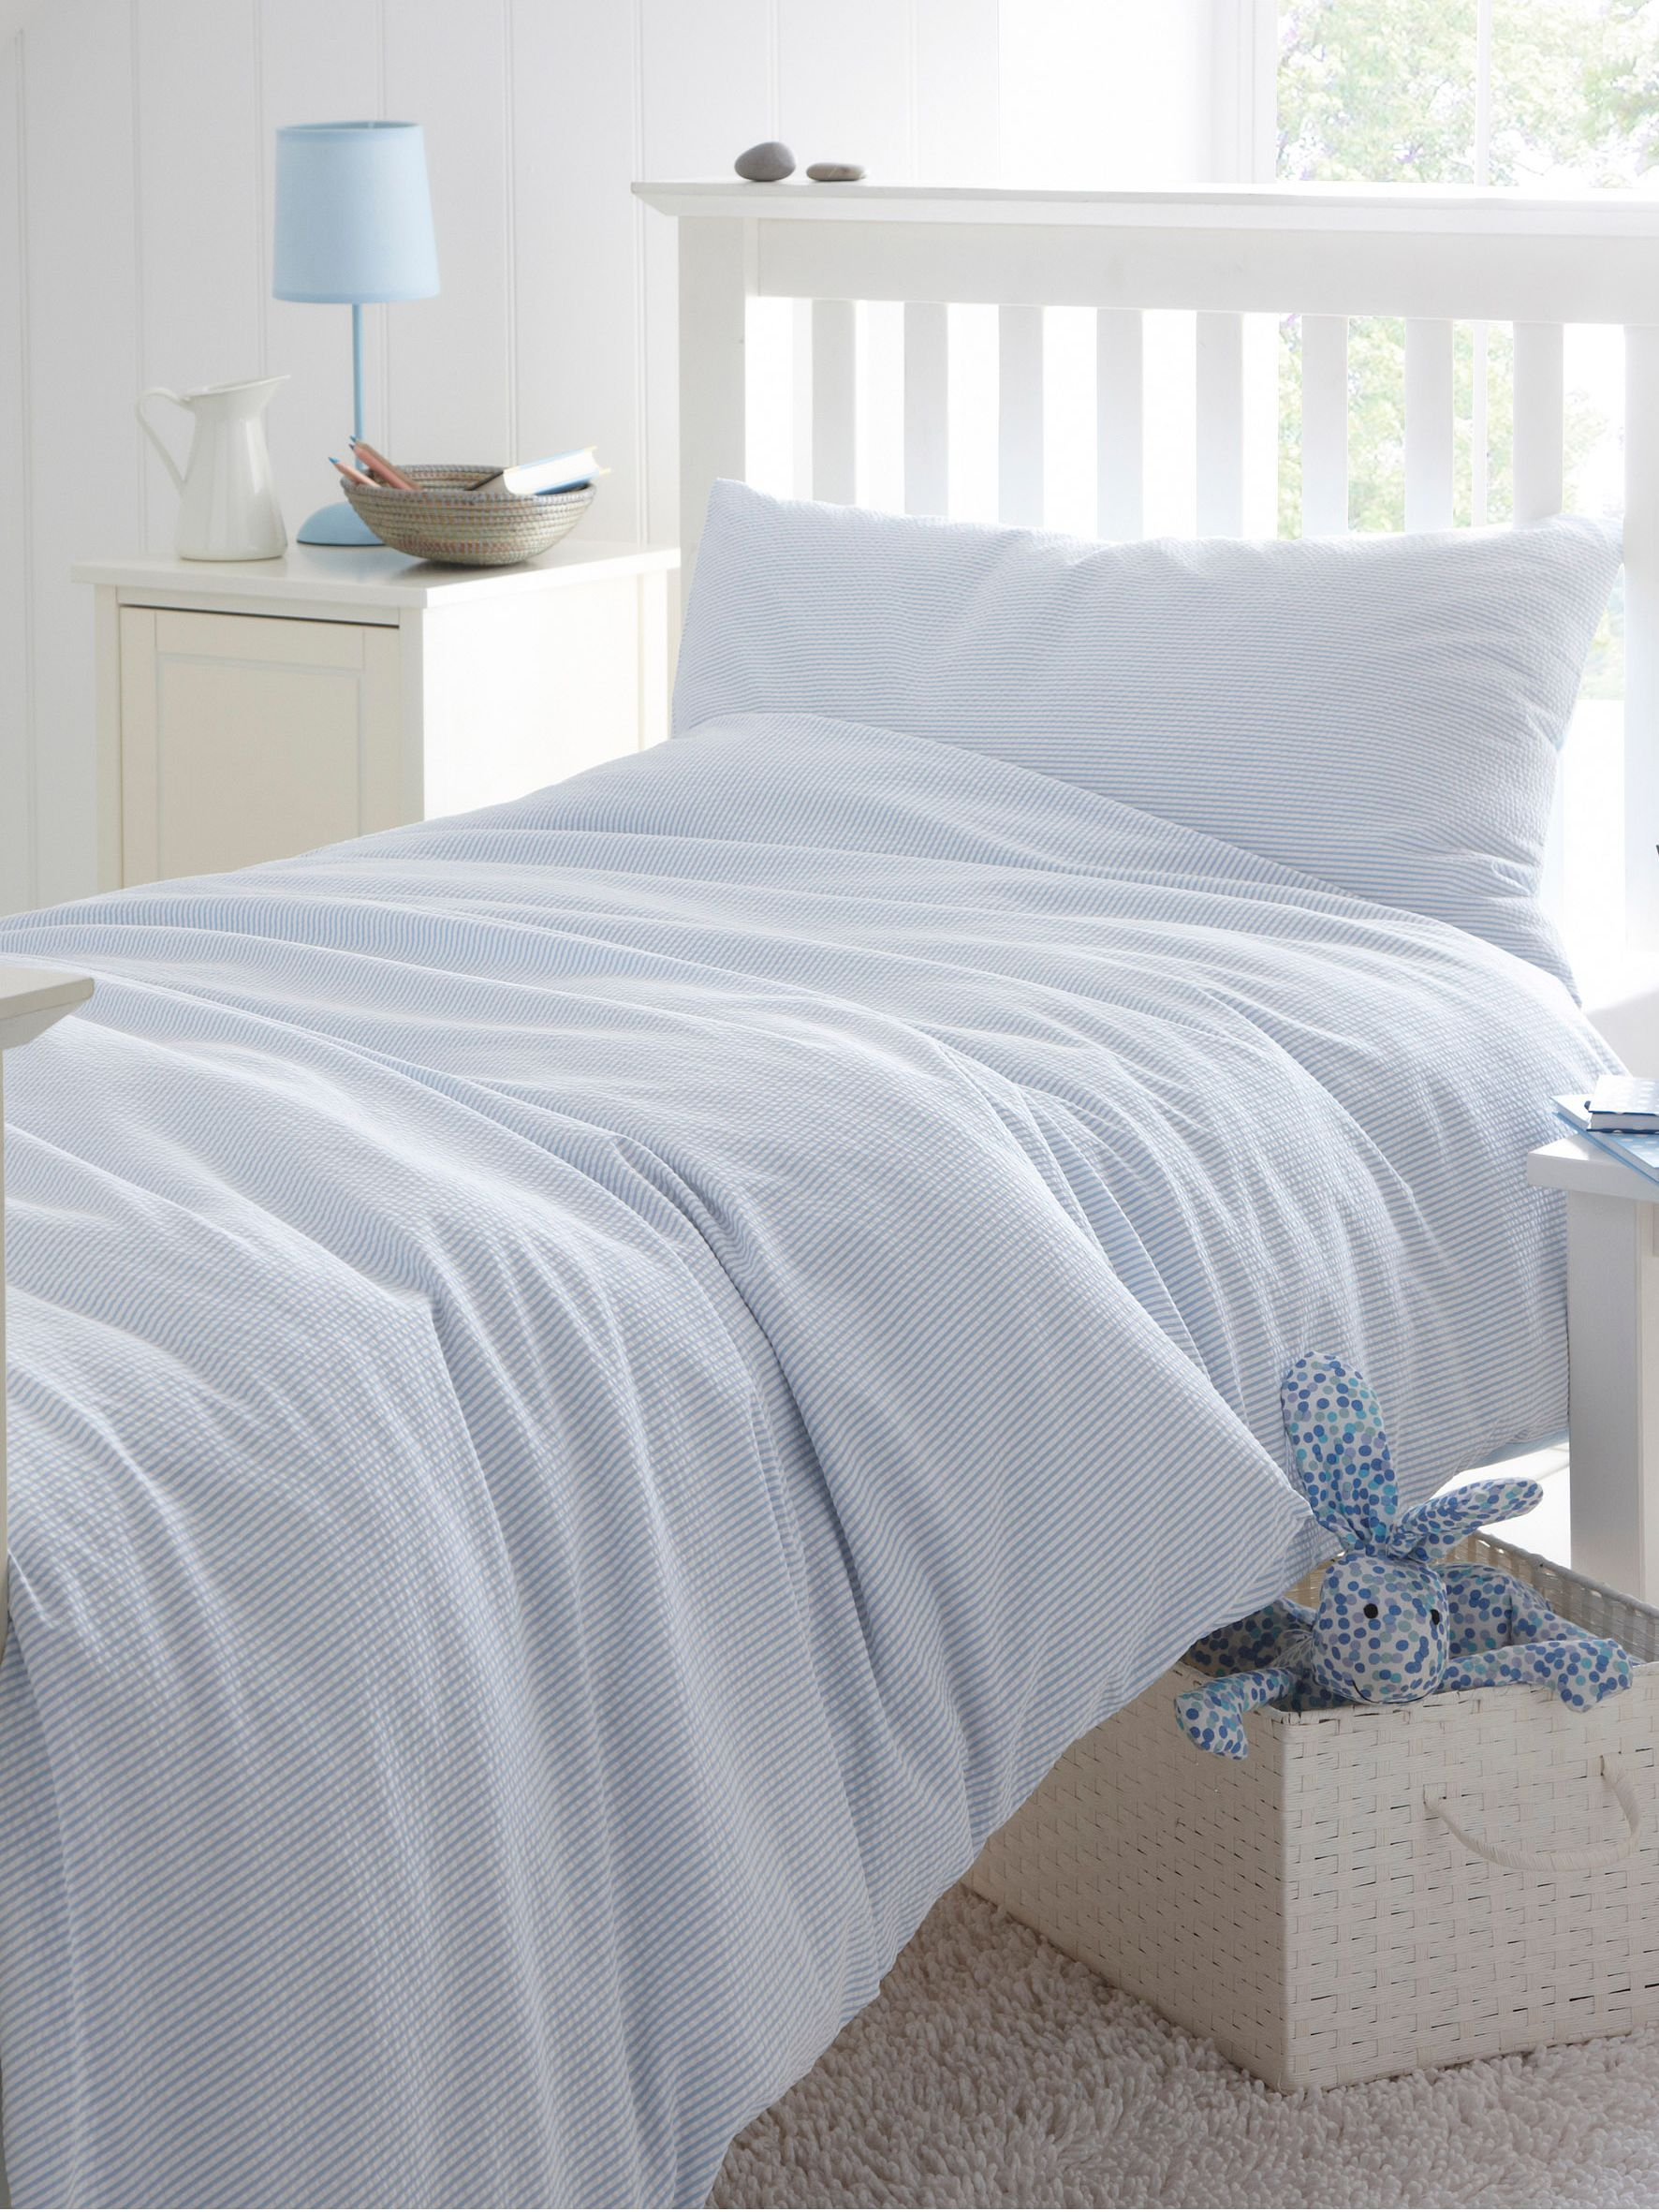 Seersucker double duvet cover set blue and white